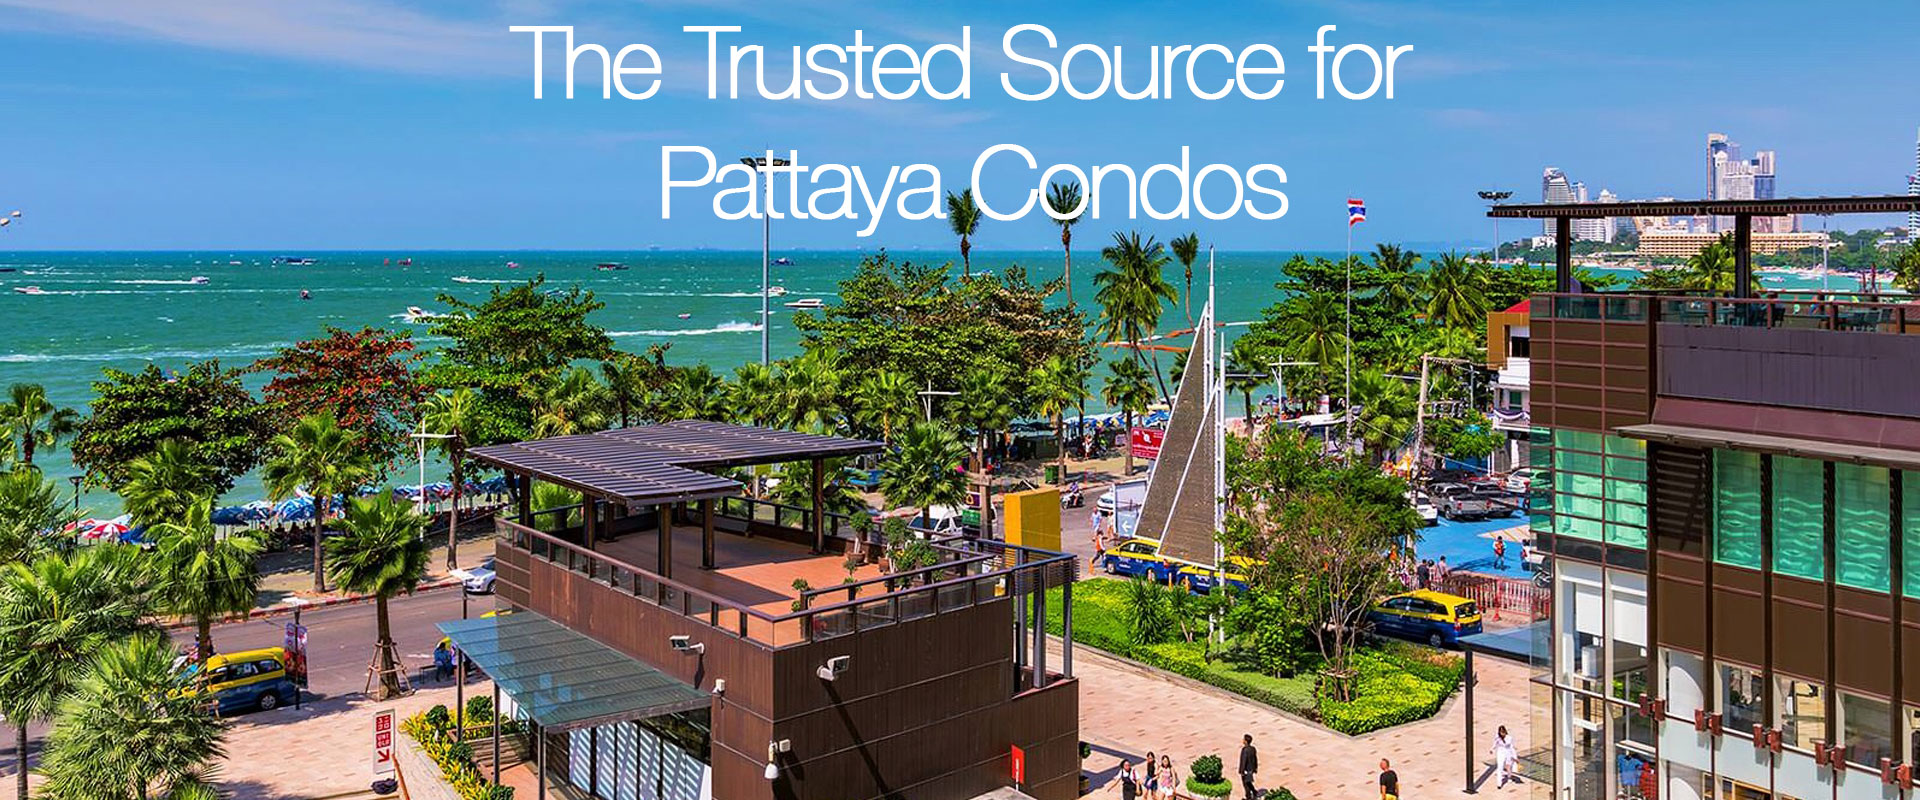 Condos for sale and rent in Pattaya, Jomtien, Wong Amat, Thailand - Pattaya Condo Guide.